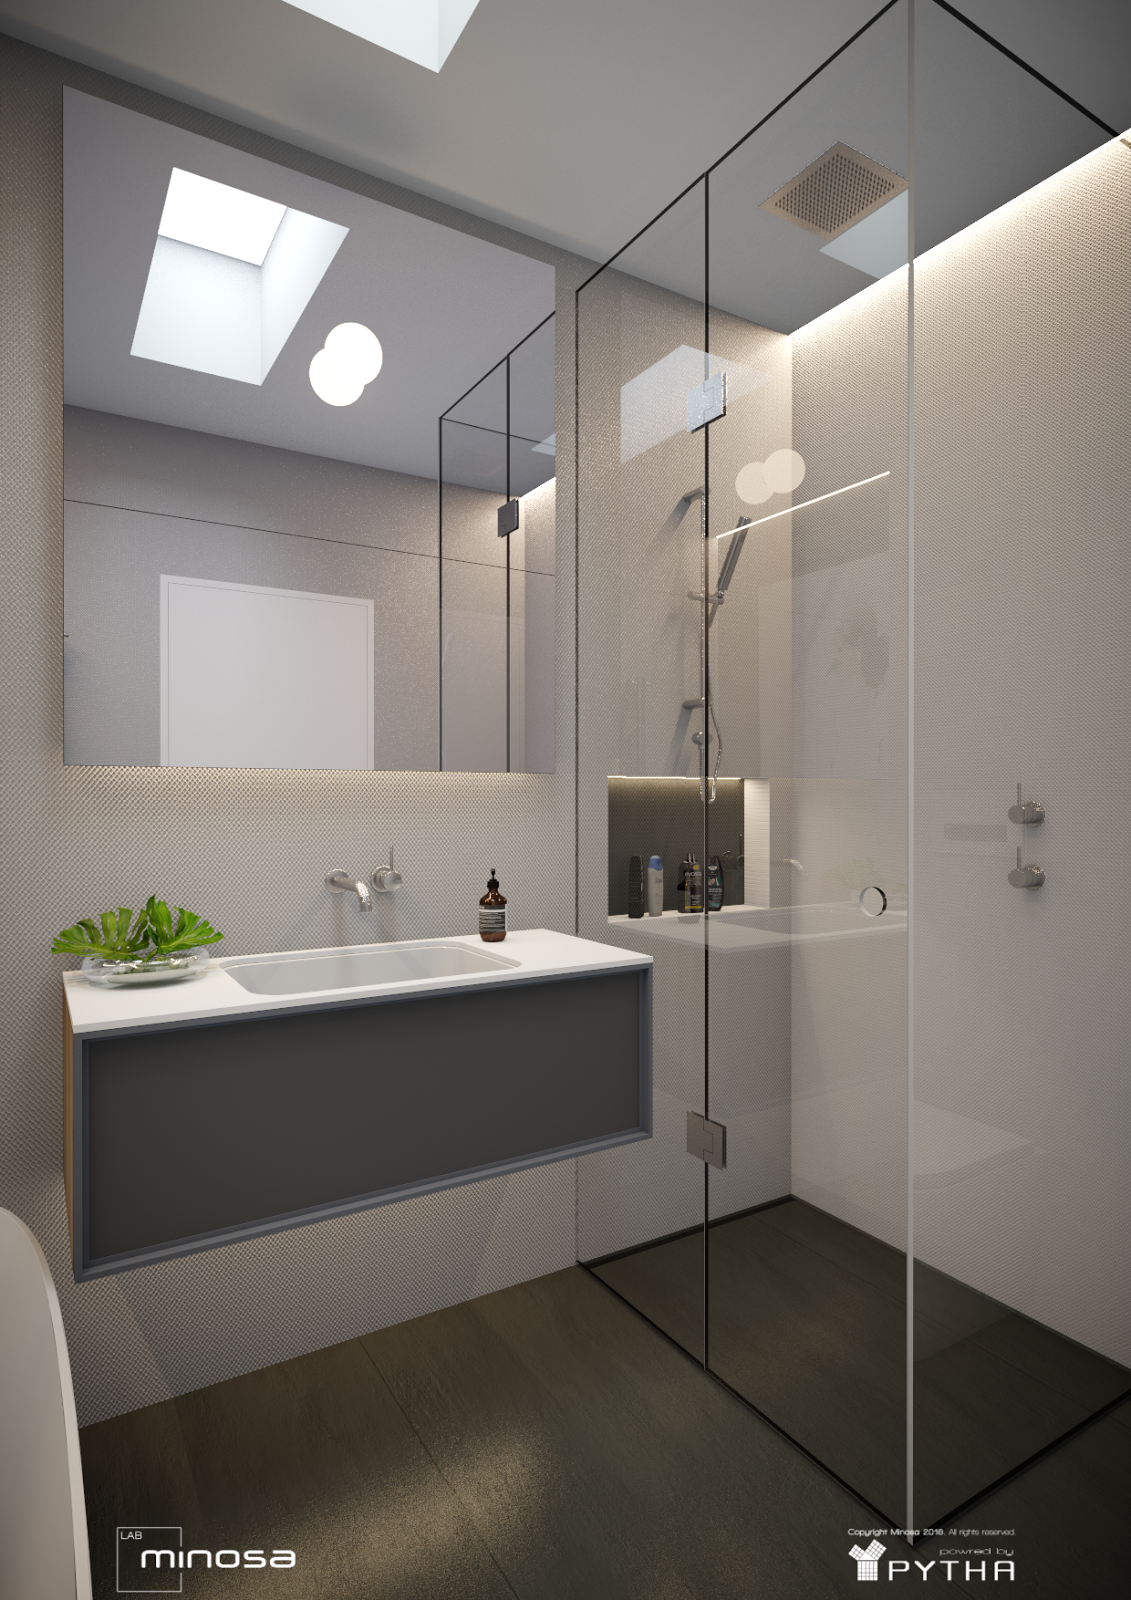 Minosa new minosa bathroom design resort style ensuite - Small Space Big On Style By Minosa